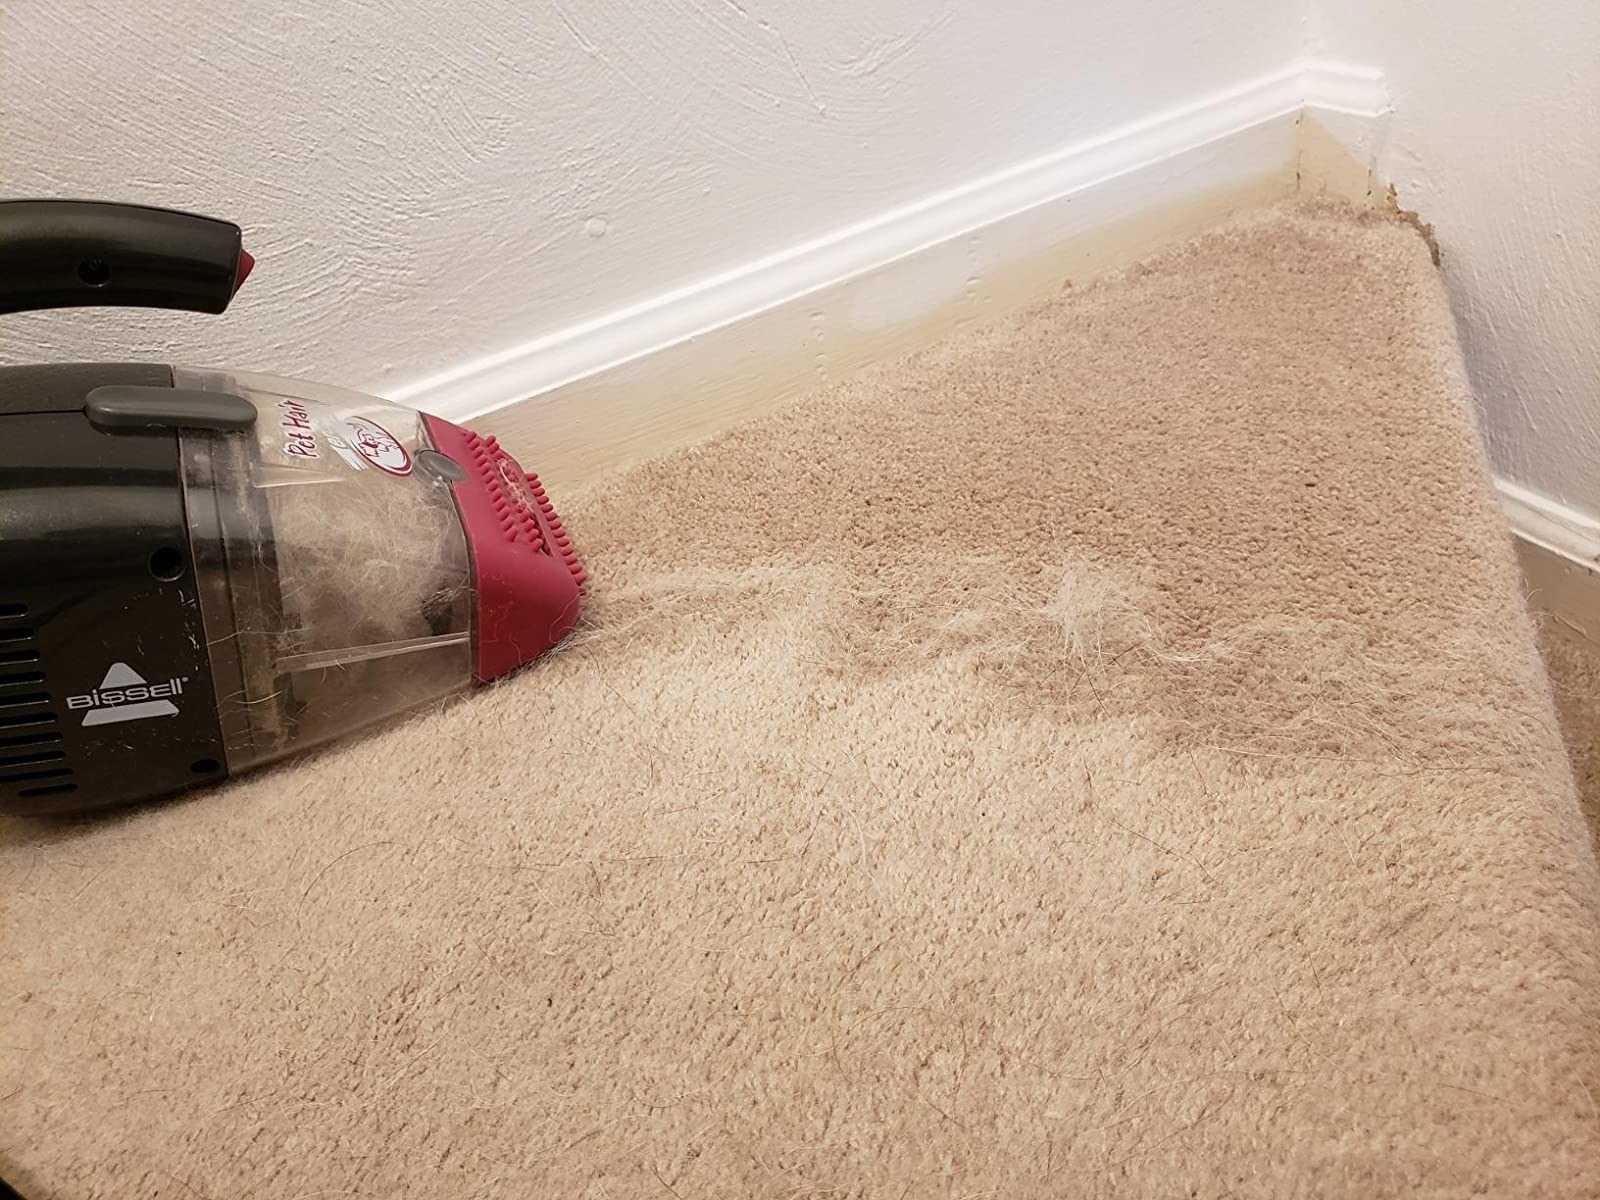 Reviewer's photo of the black and red vacuum getting white hair out of their tan carpet